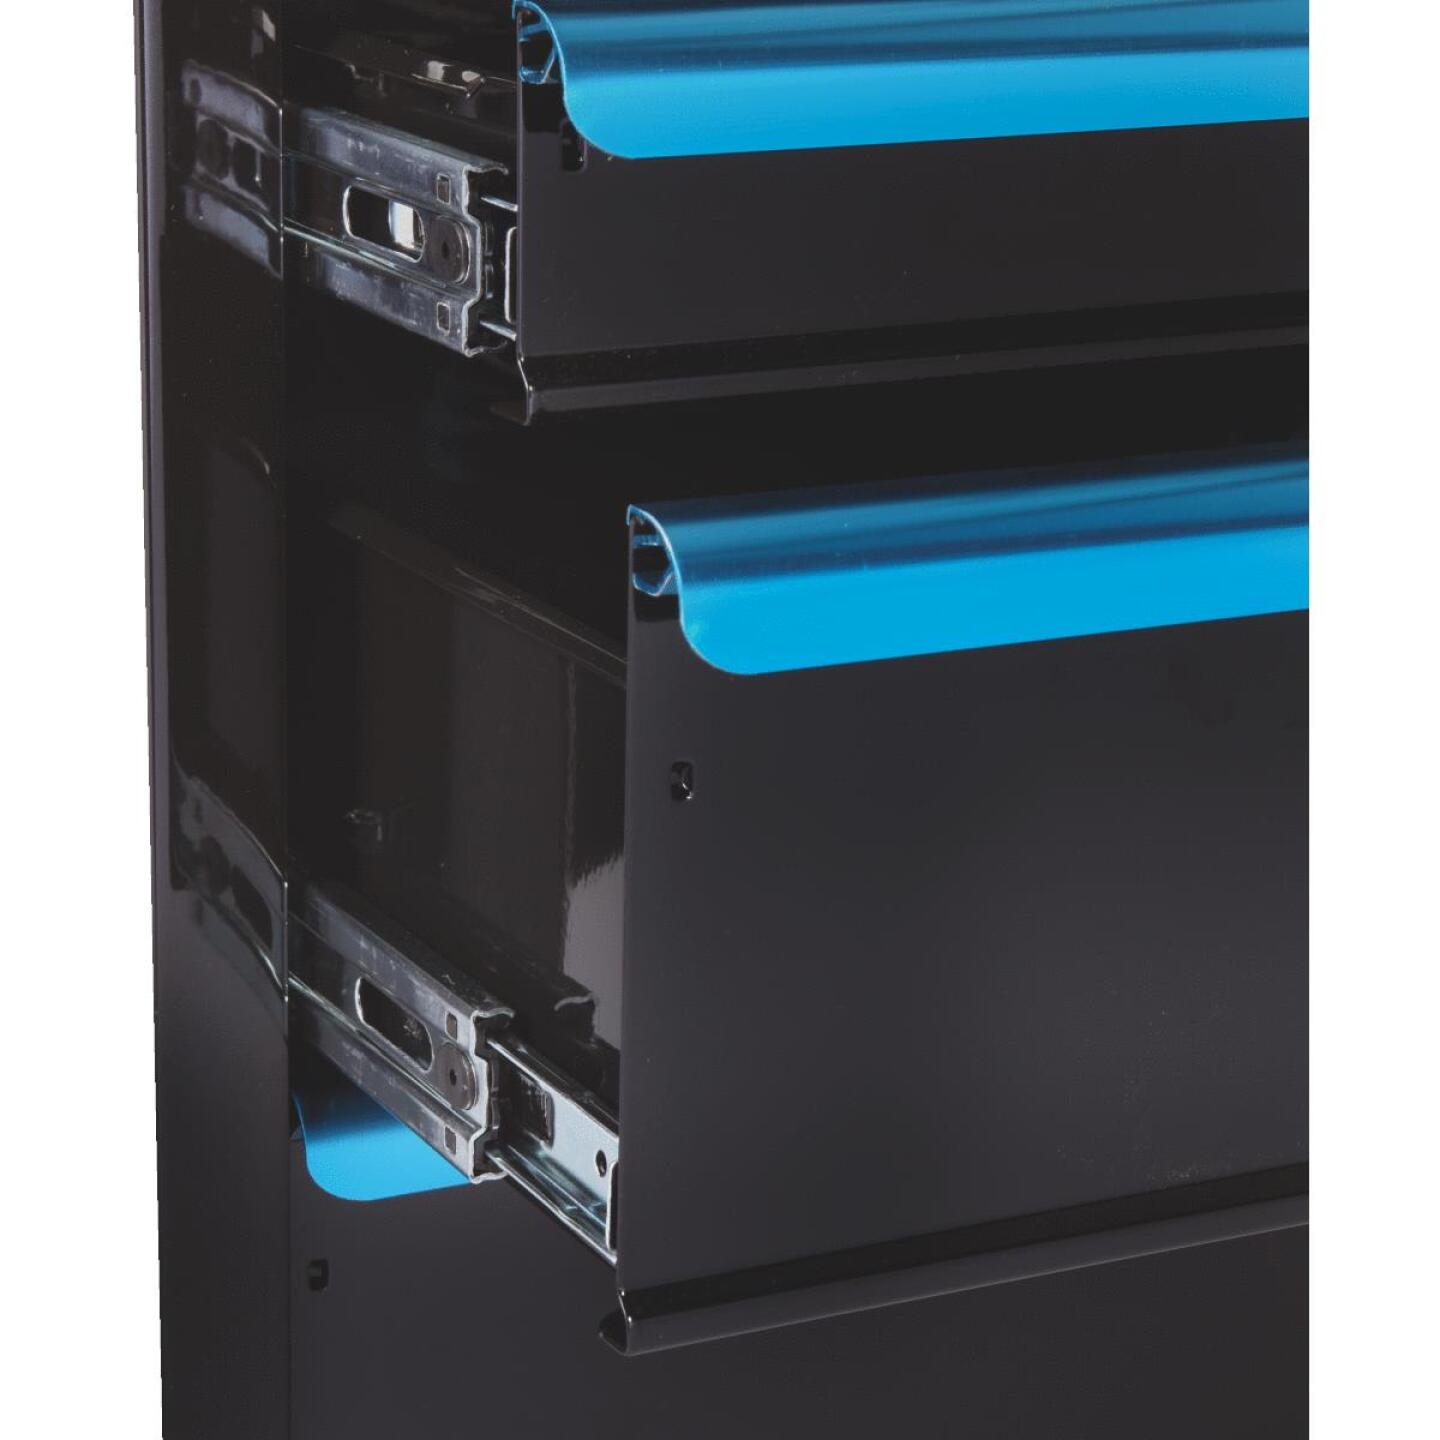 Channellock 26 In. 7-Drawer Black and Blue Tool Chest Image 6